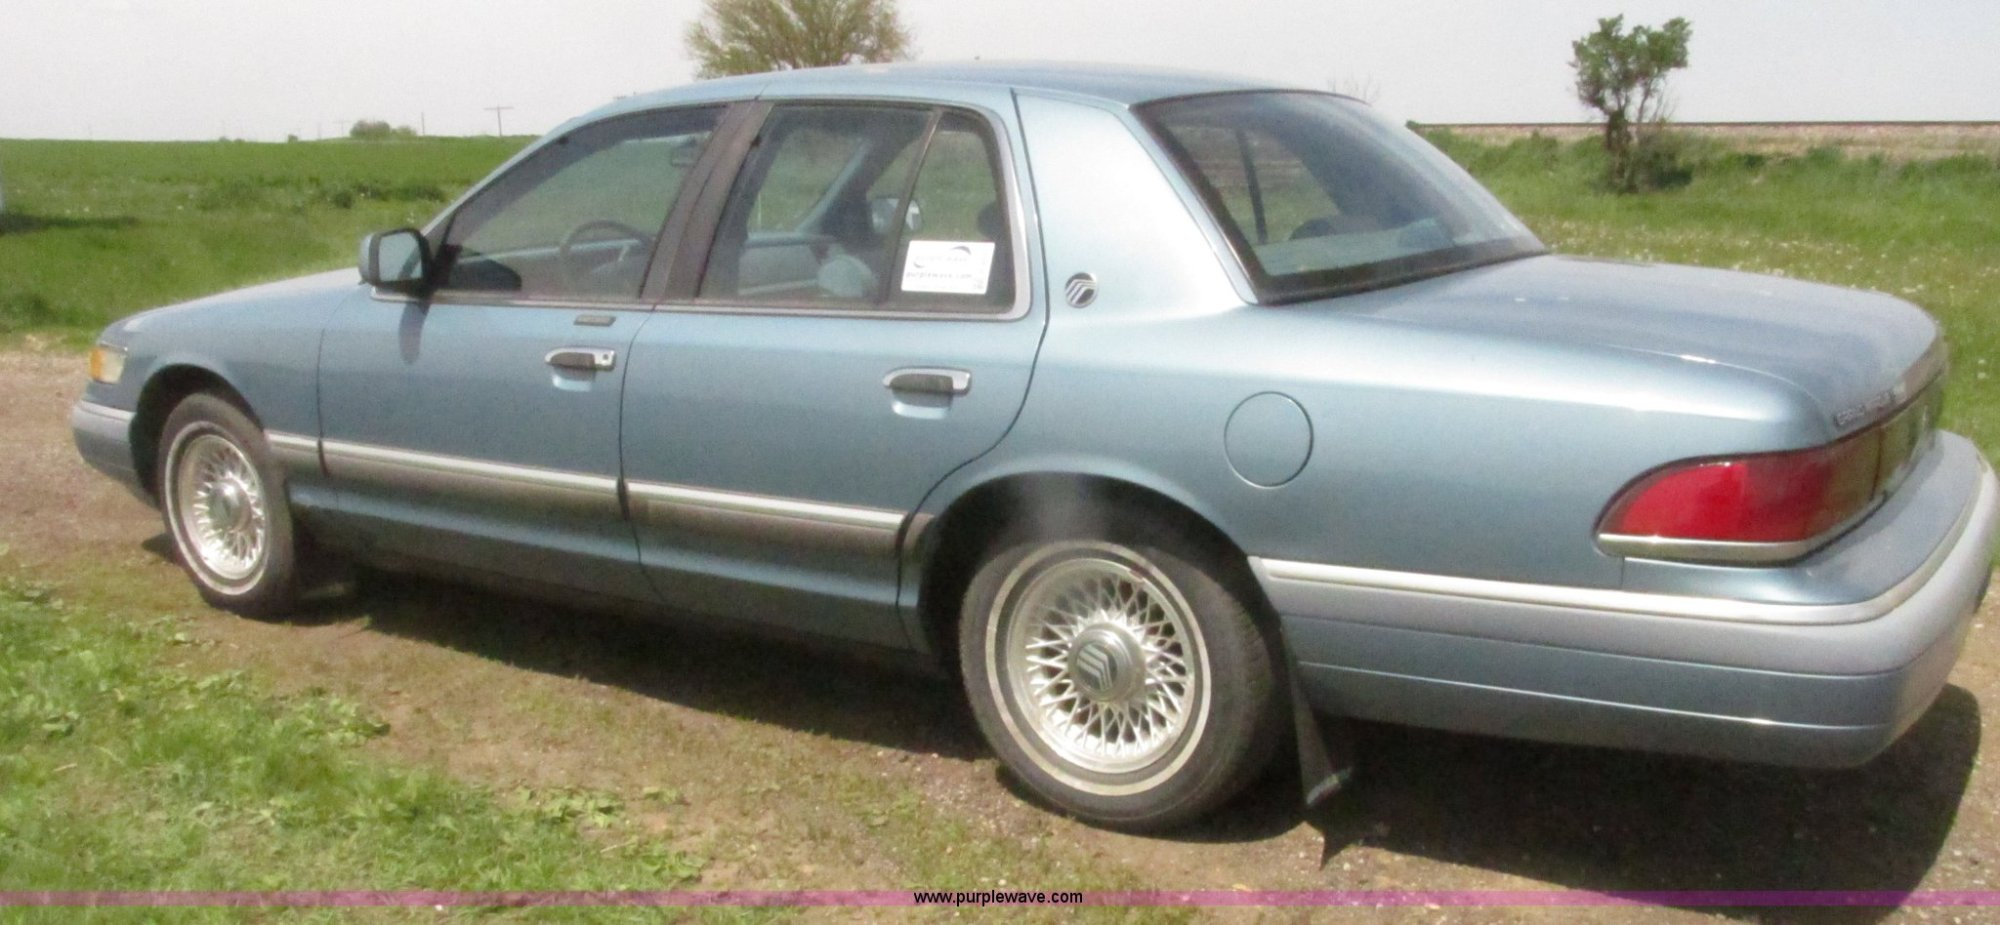 hight resolution of  1994 mercury grand marquis ls full size in new window